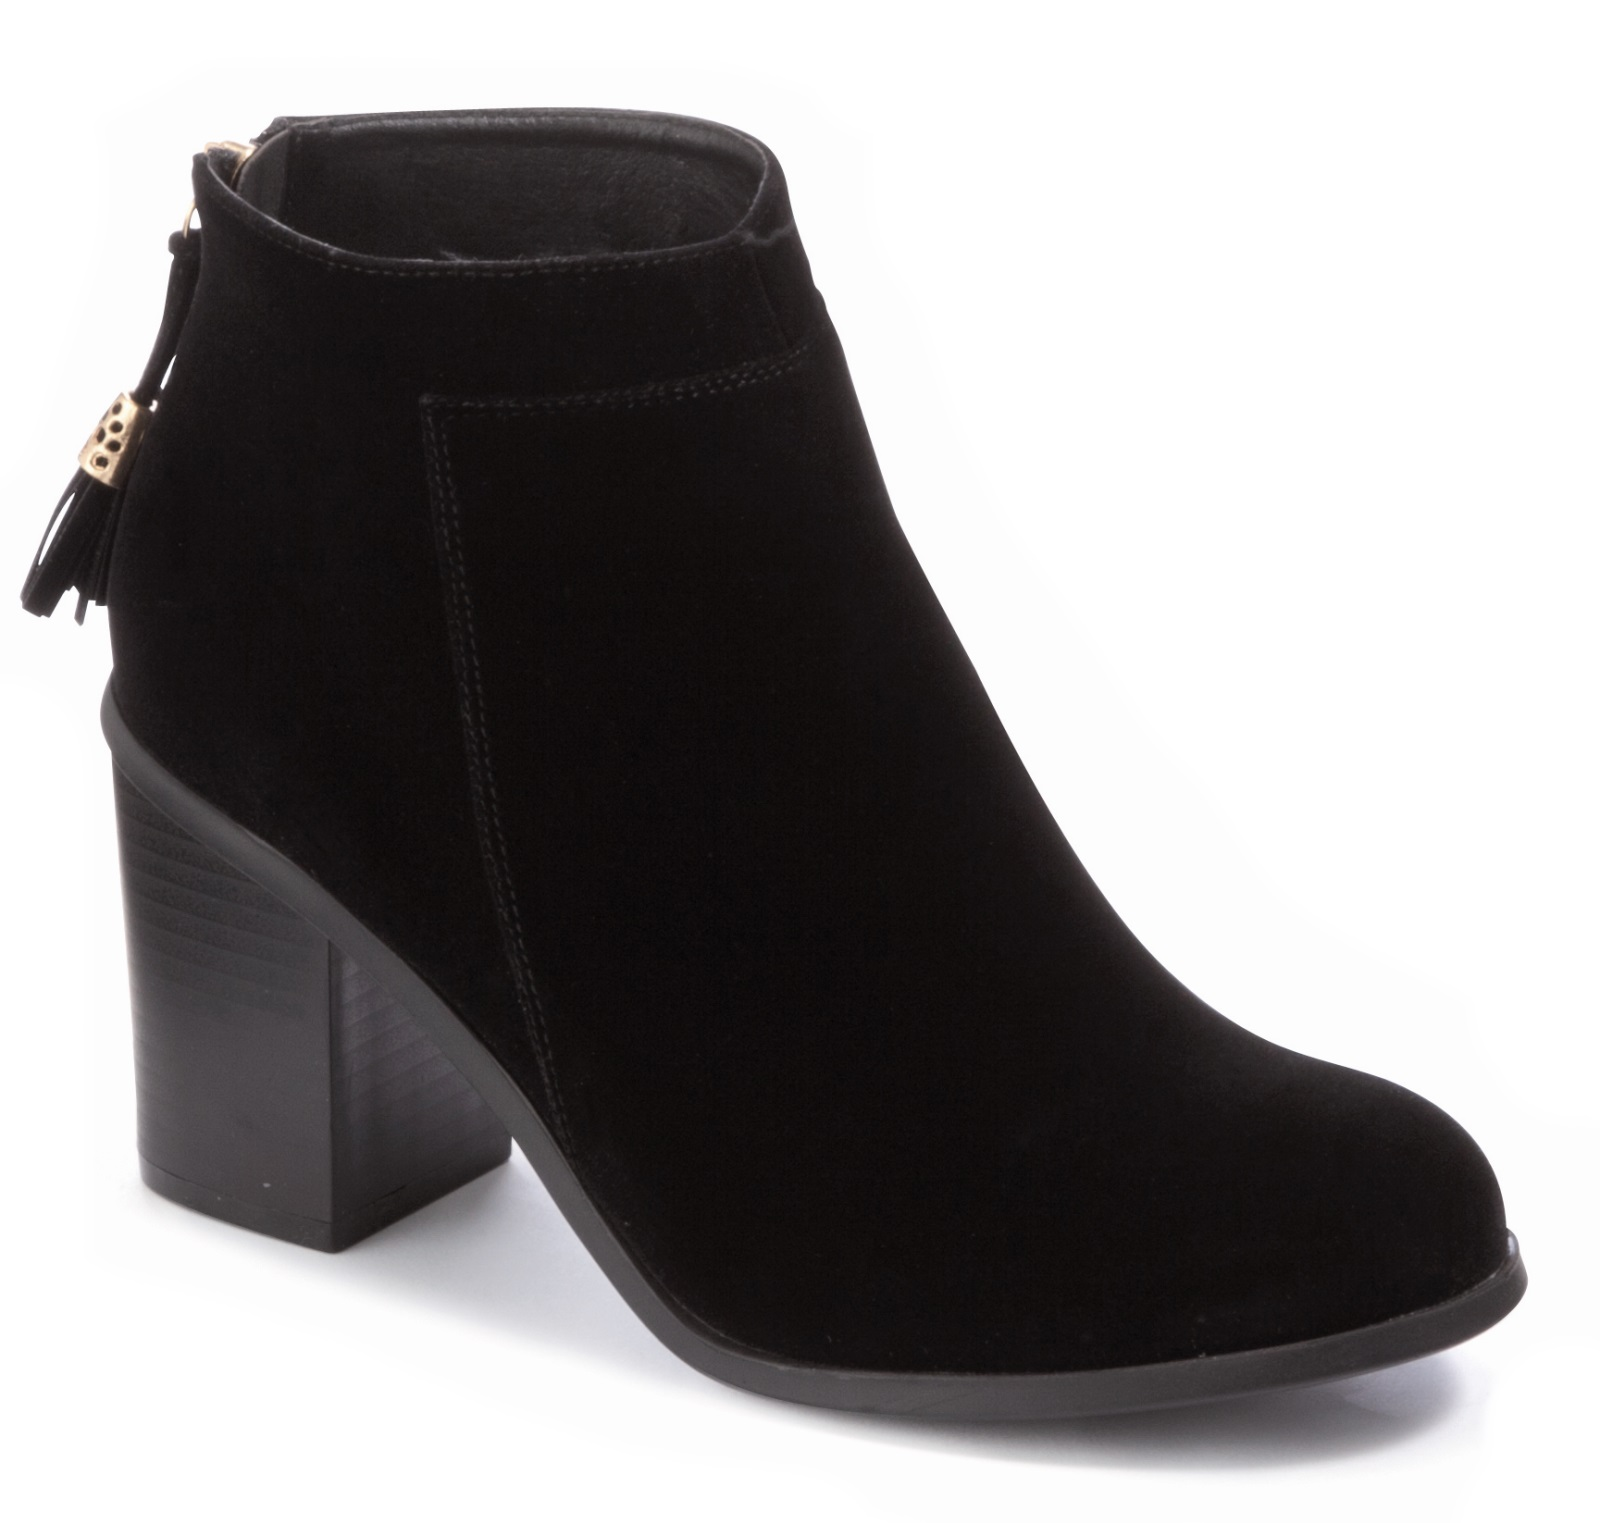 Unique Womens Ankle Boots Rugged Lace Up High Heel Shoes Black - Pricefalls.com Marketplace